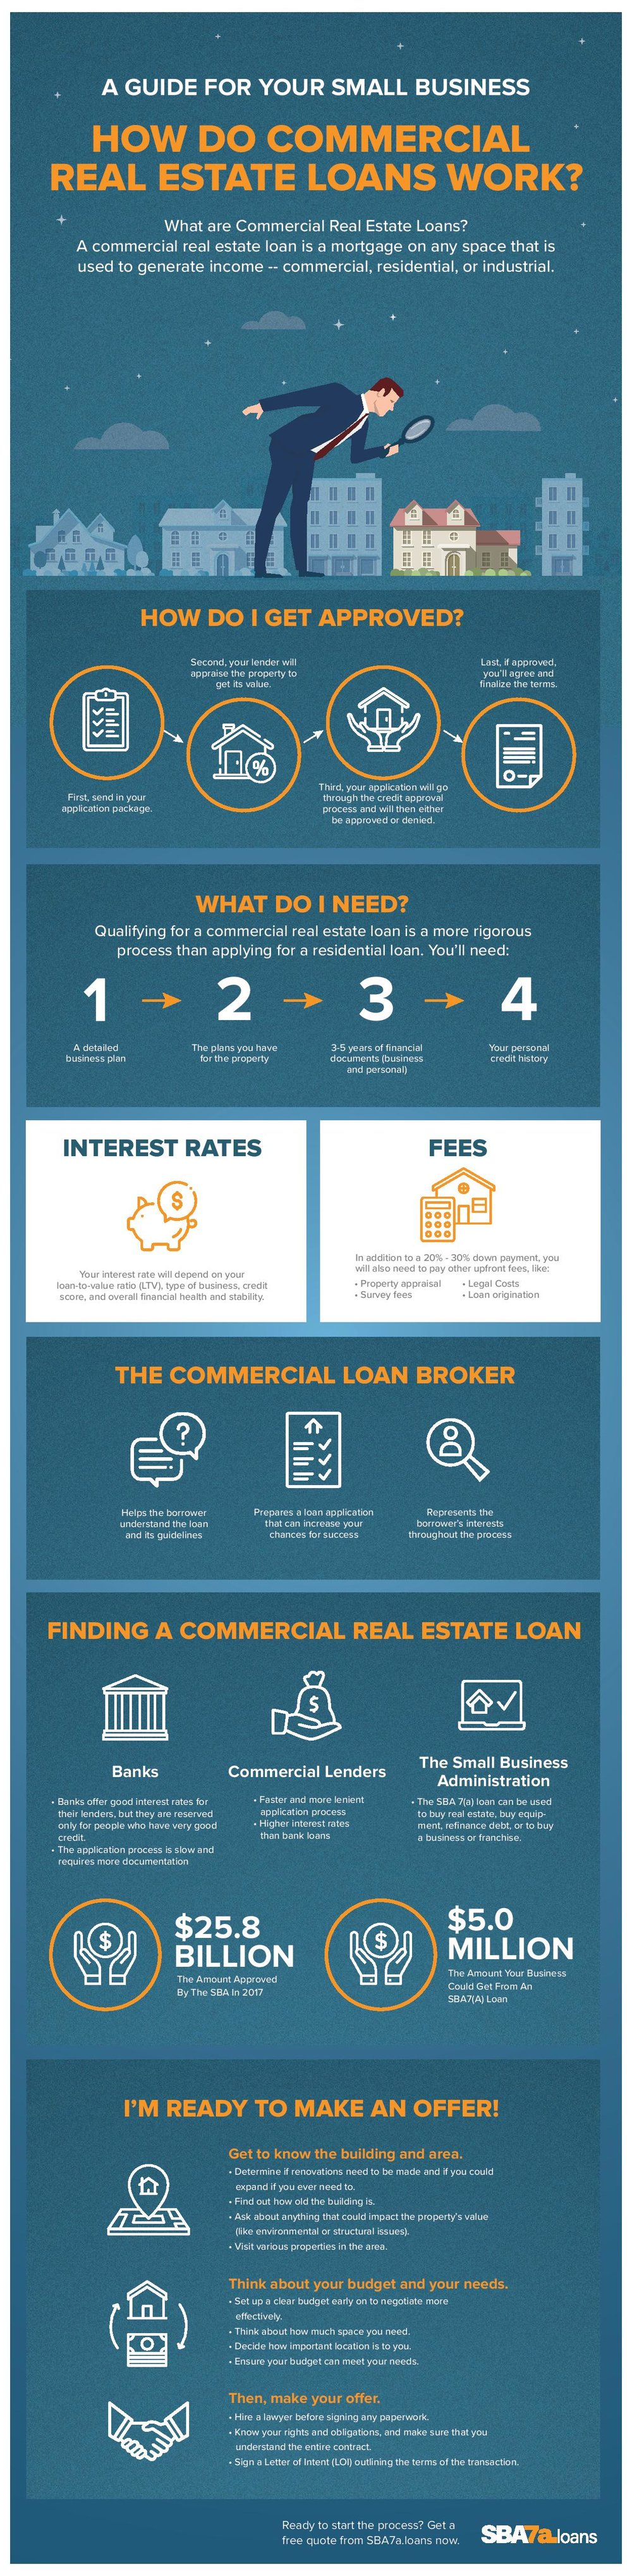 infographic-sba-loans-102618-page-001.jpg